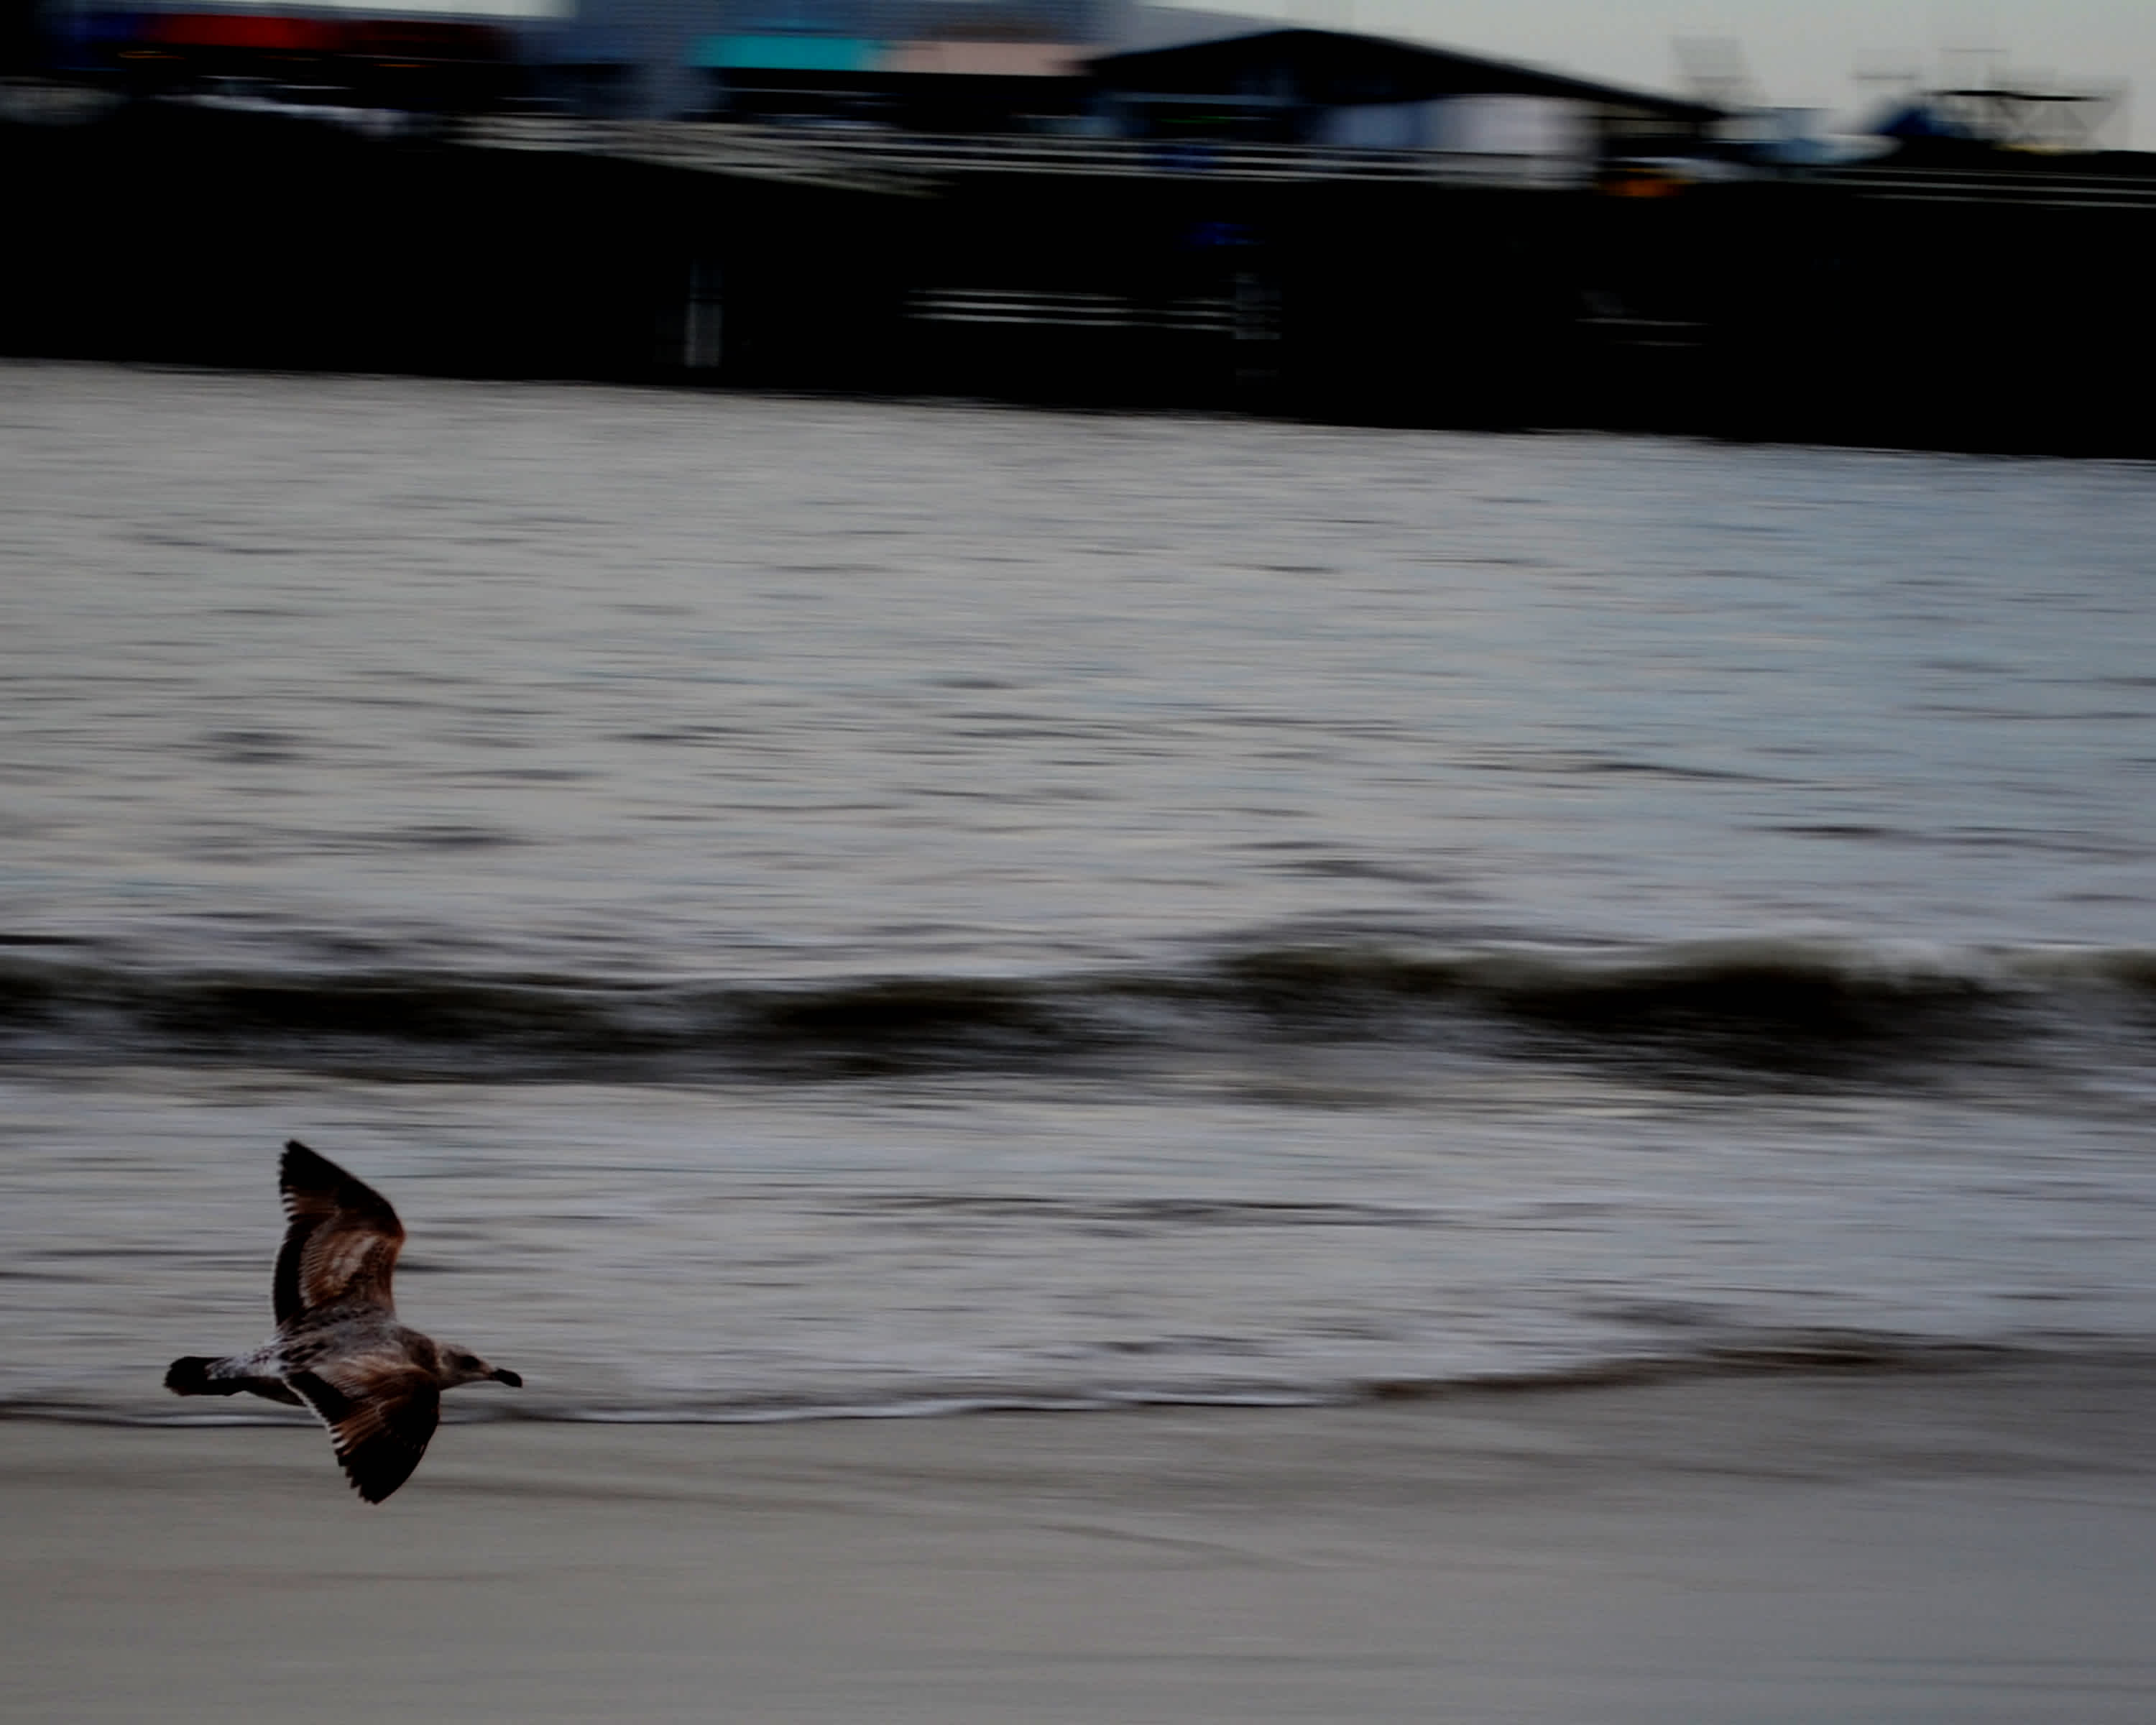 Bird flying past the ocean and pier.